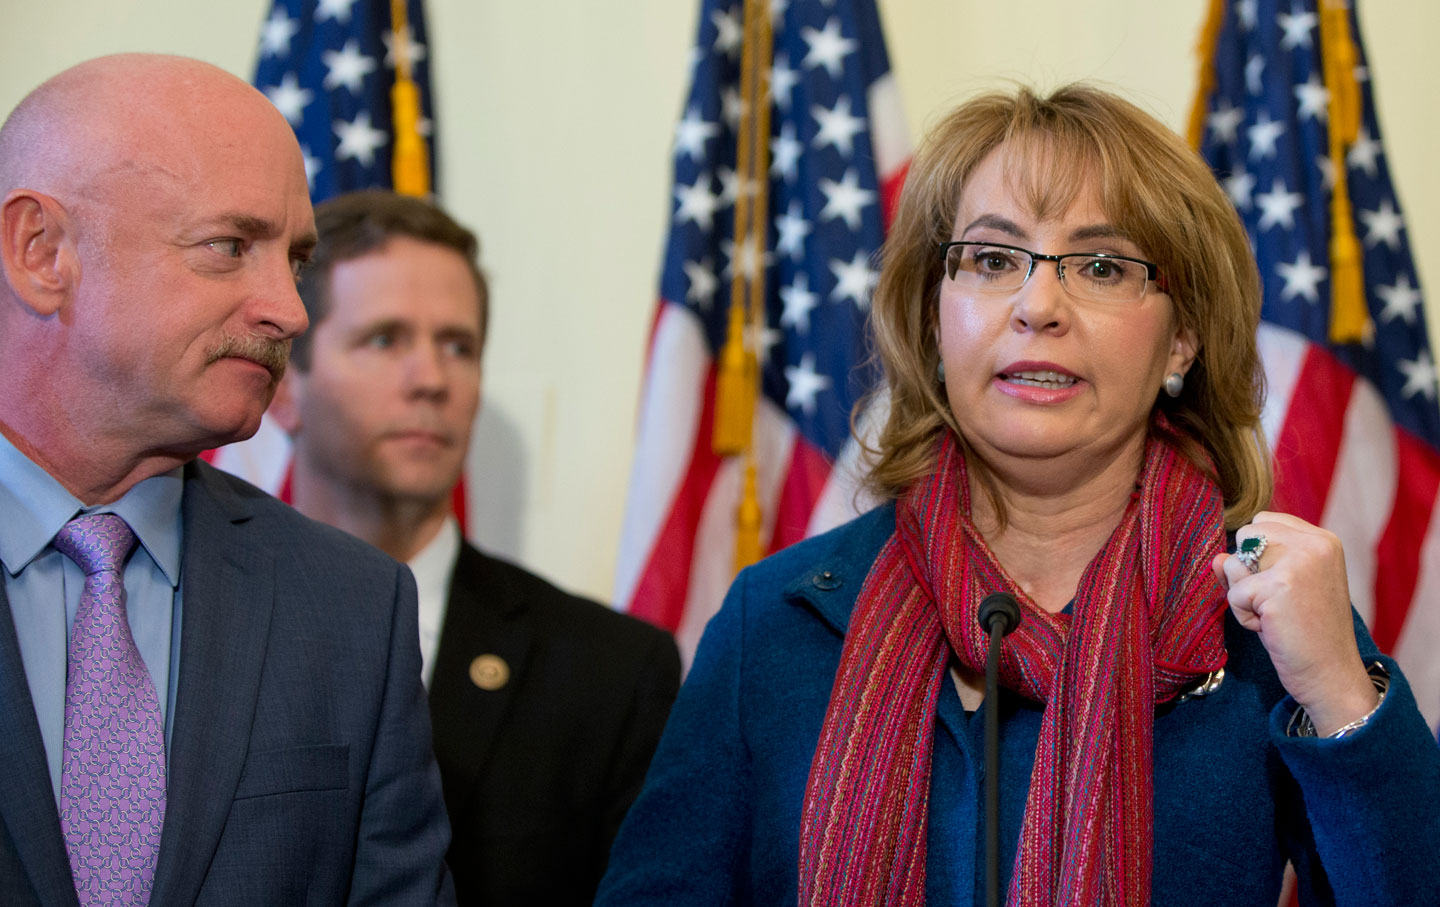 Gabby-Giffords-Returns-to-Capitol-Hill-to-Push-Background-Checks